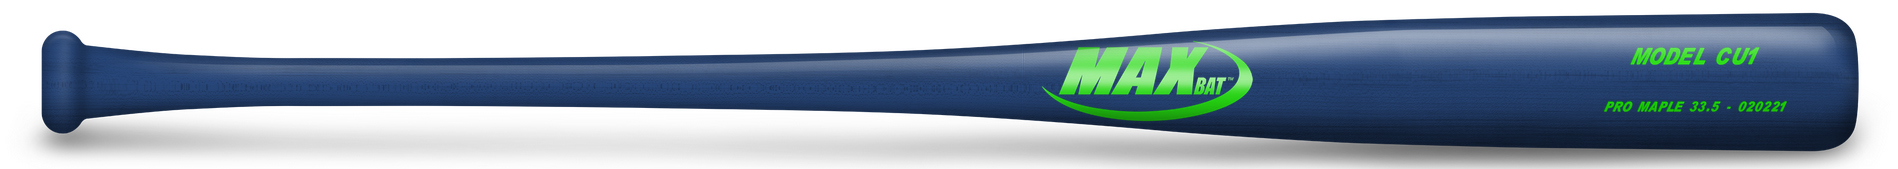 http://www.bestbatdeals.com/images/max/customPro_CU1.jpg